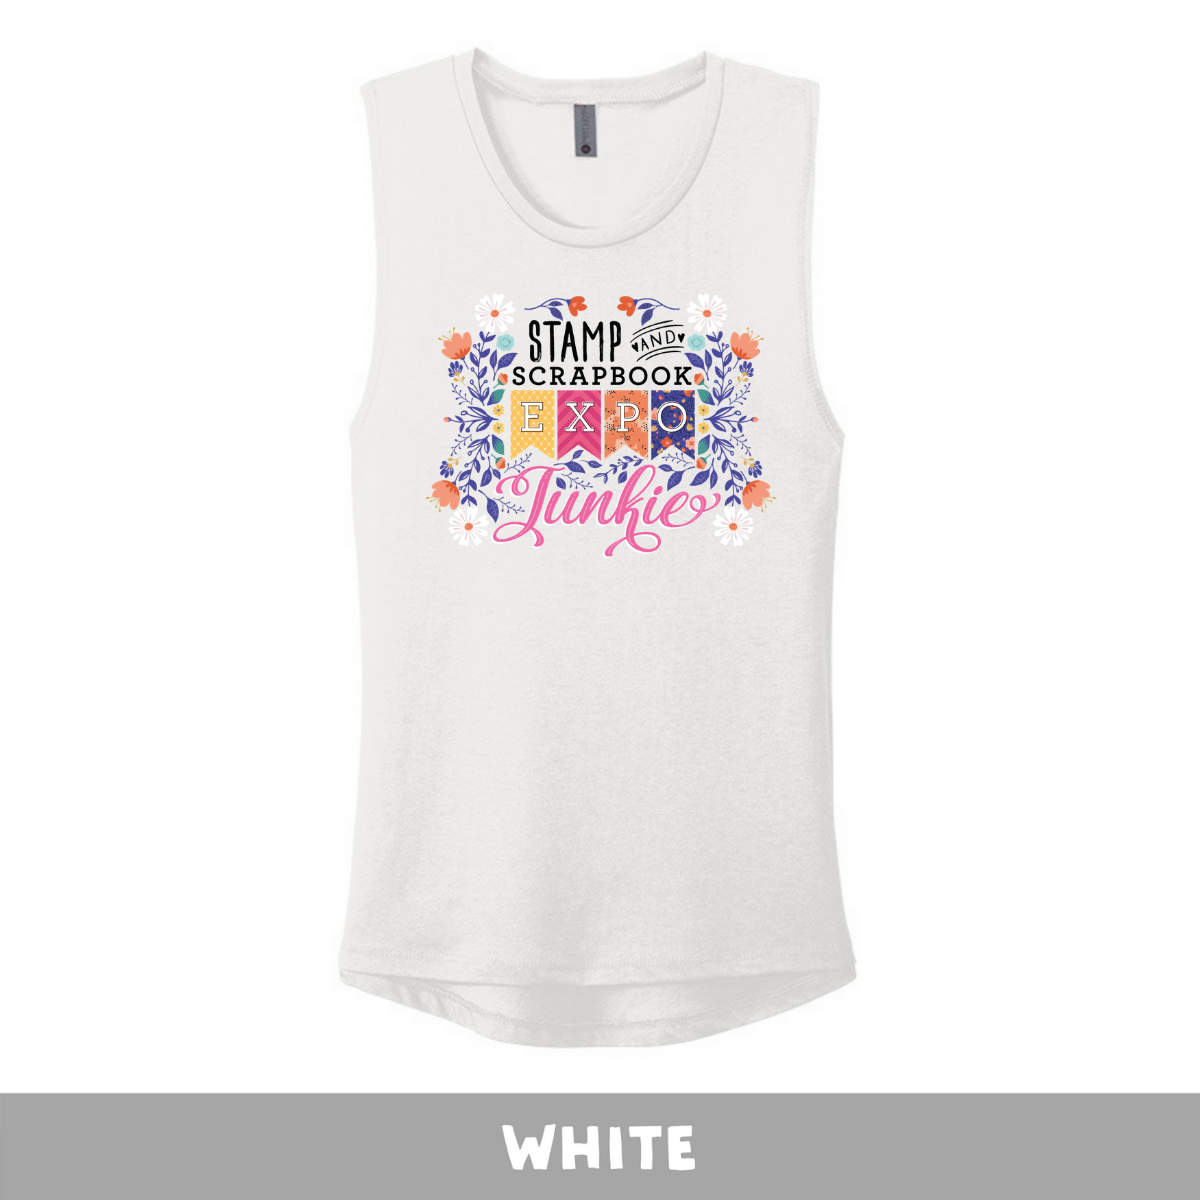 White - Women's Festival Tank Top - SSBE Junkie with Flowers